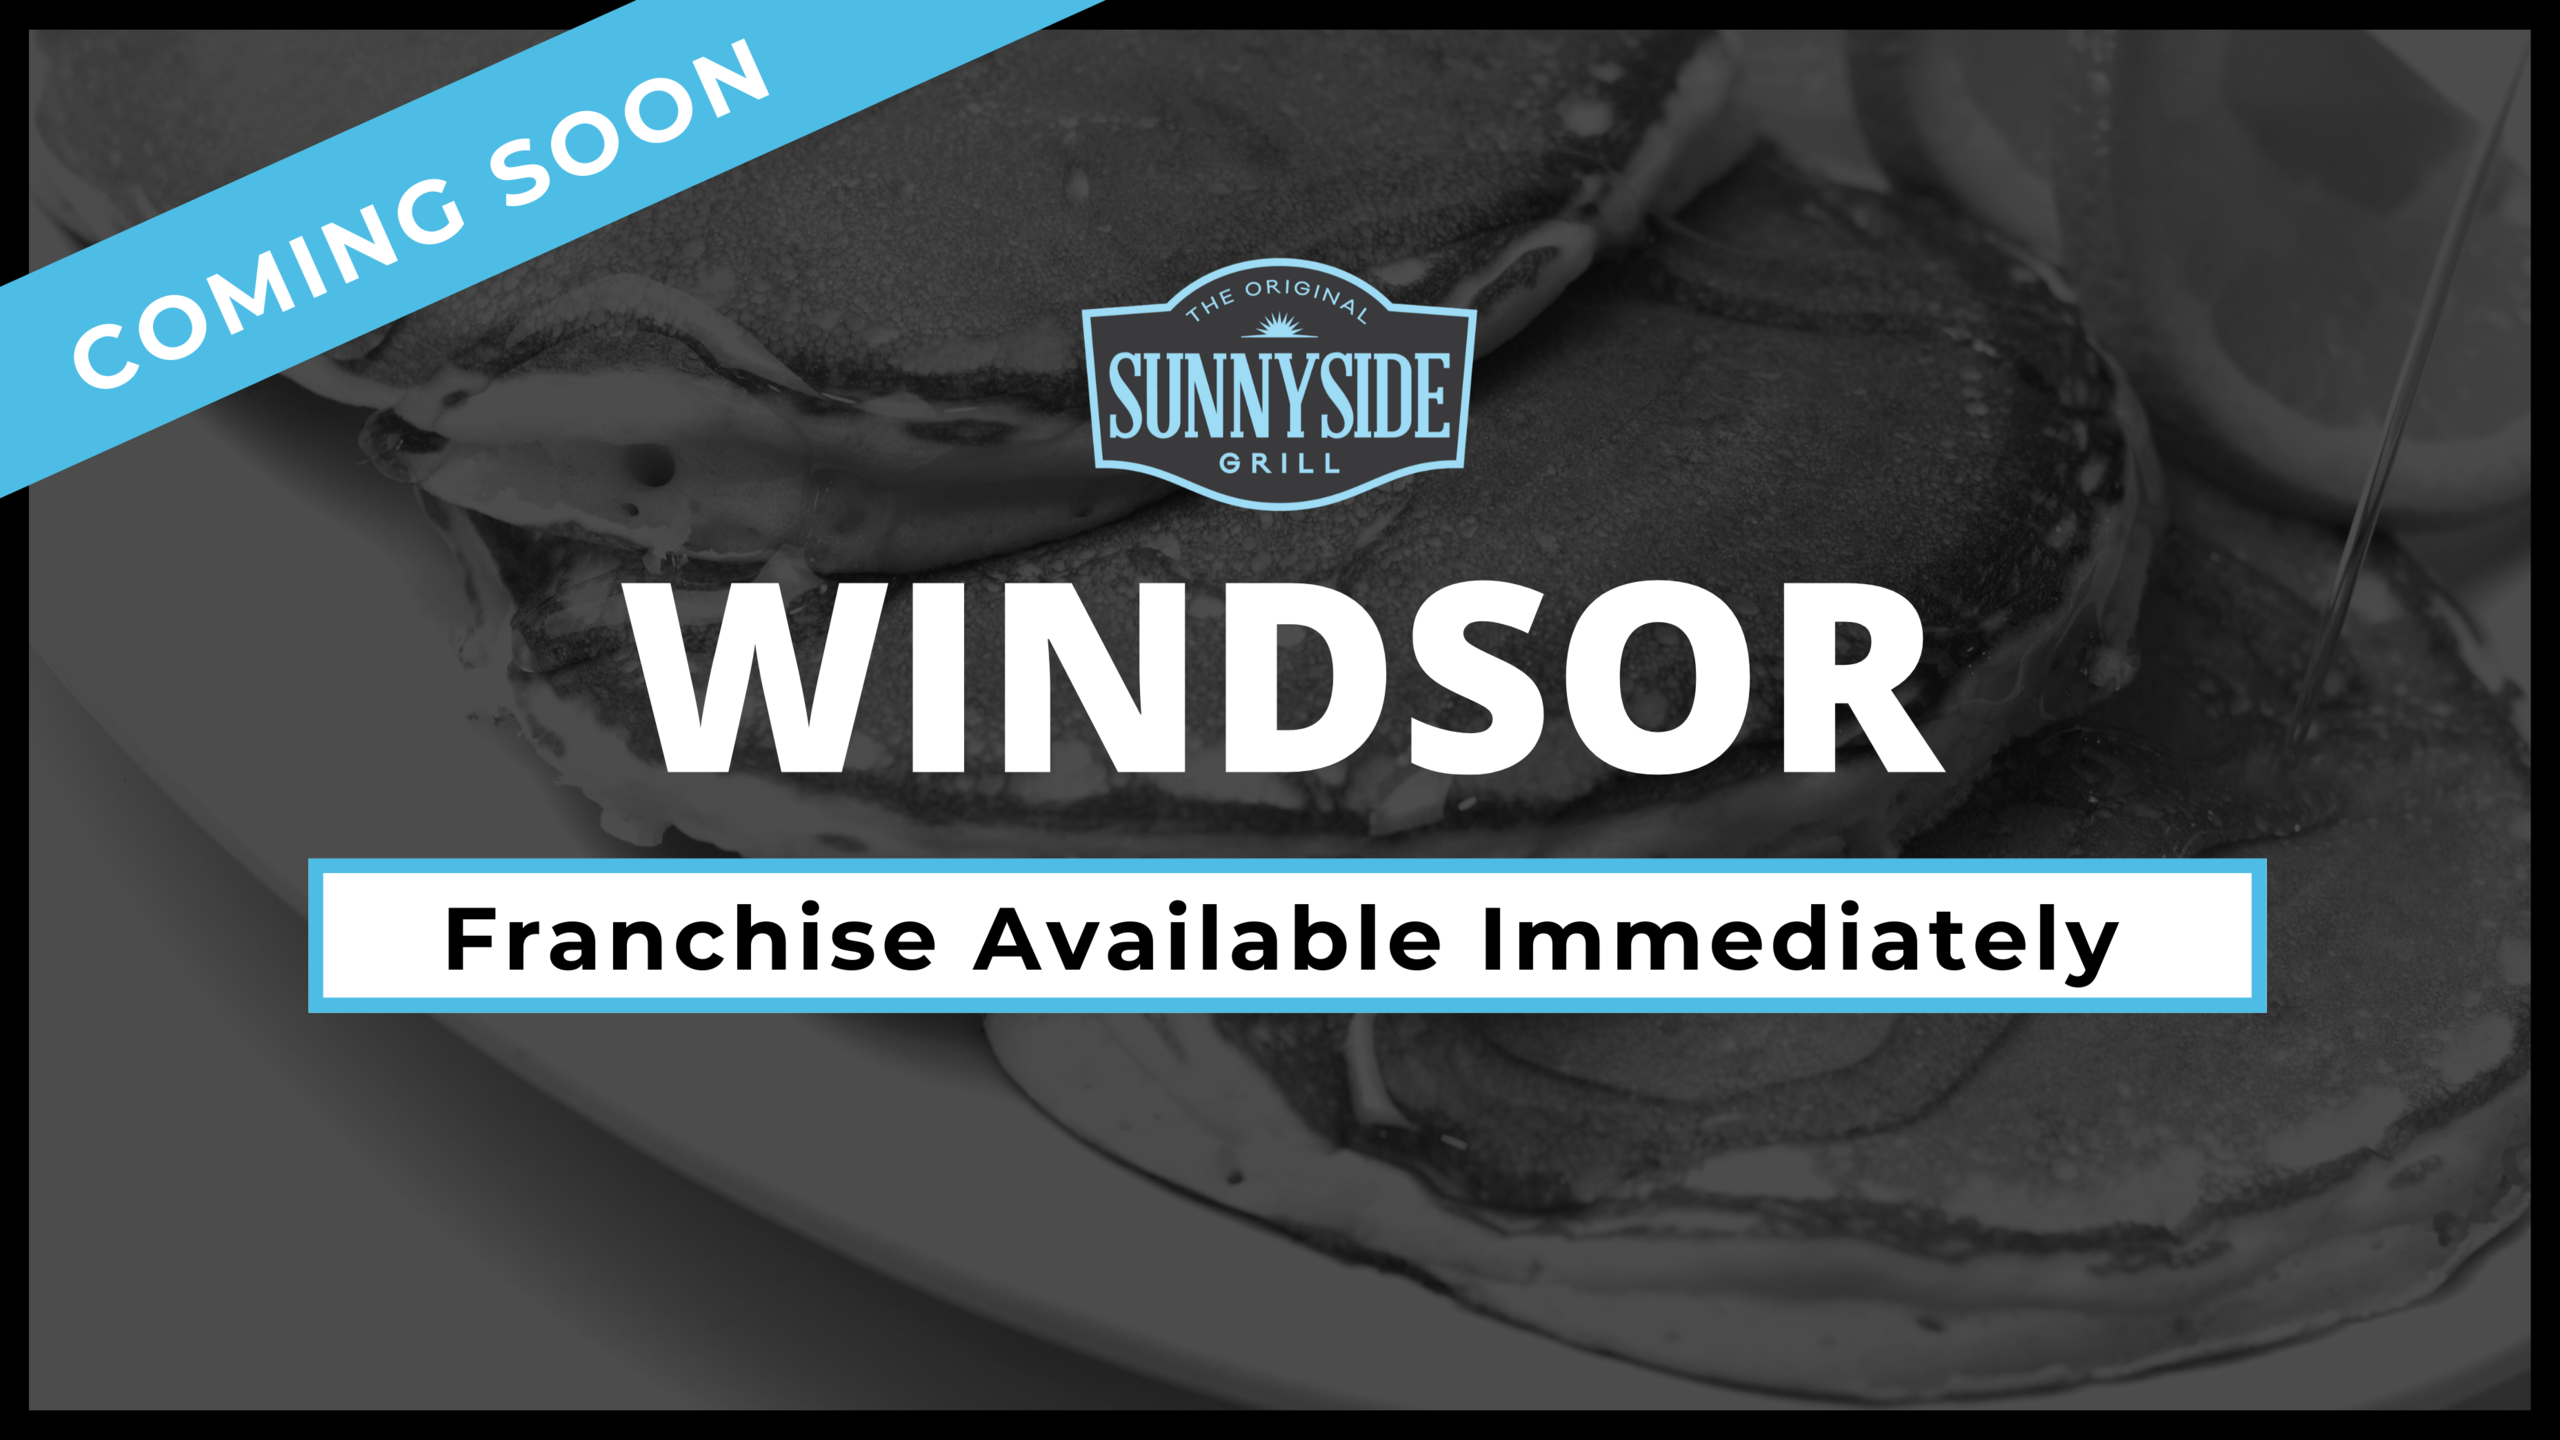 Windsor Franchise Available